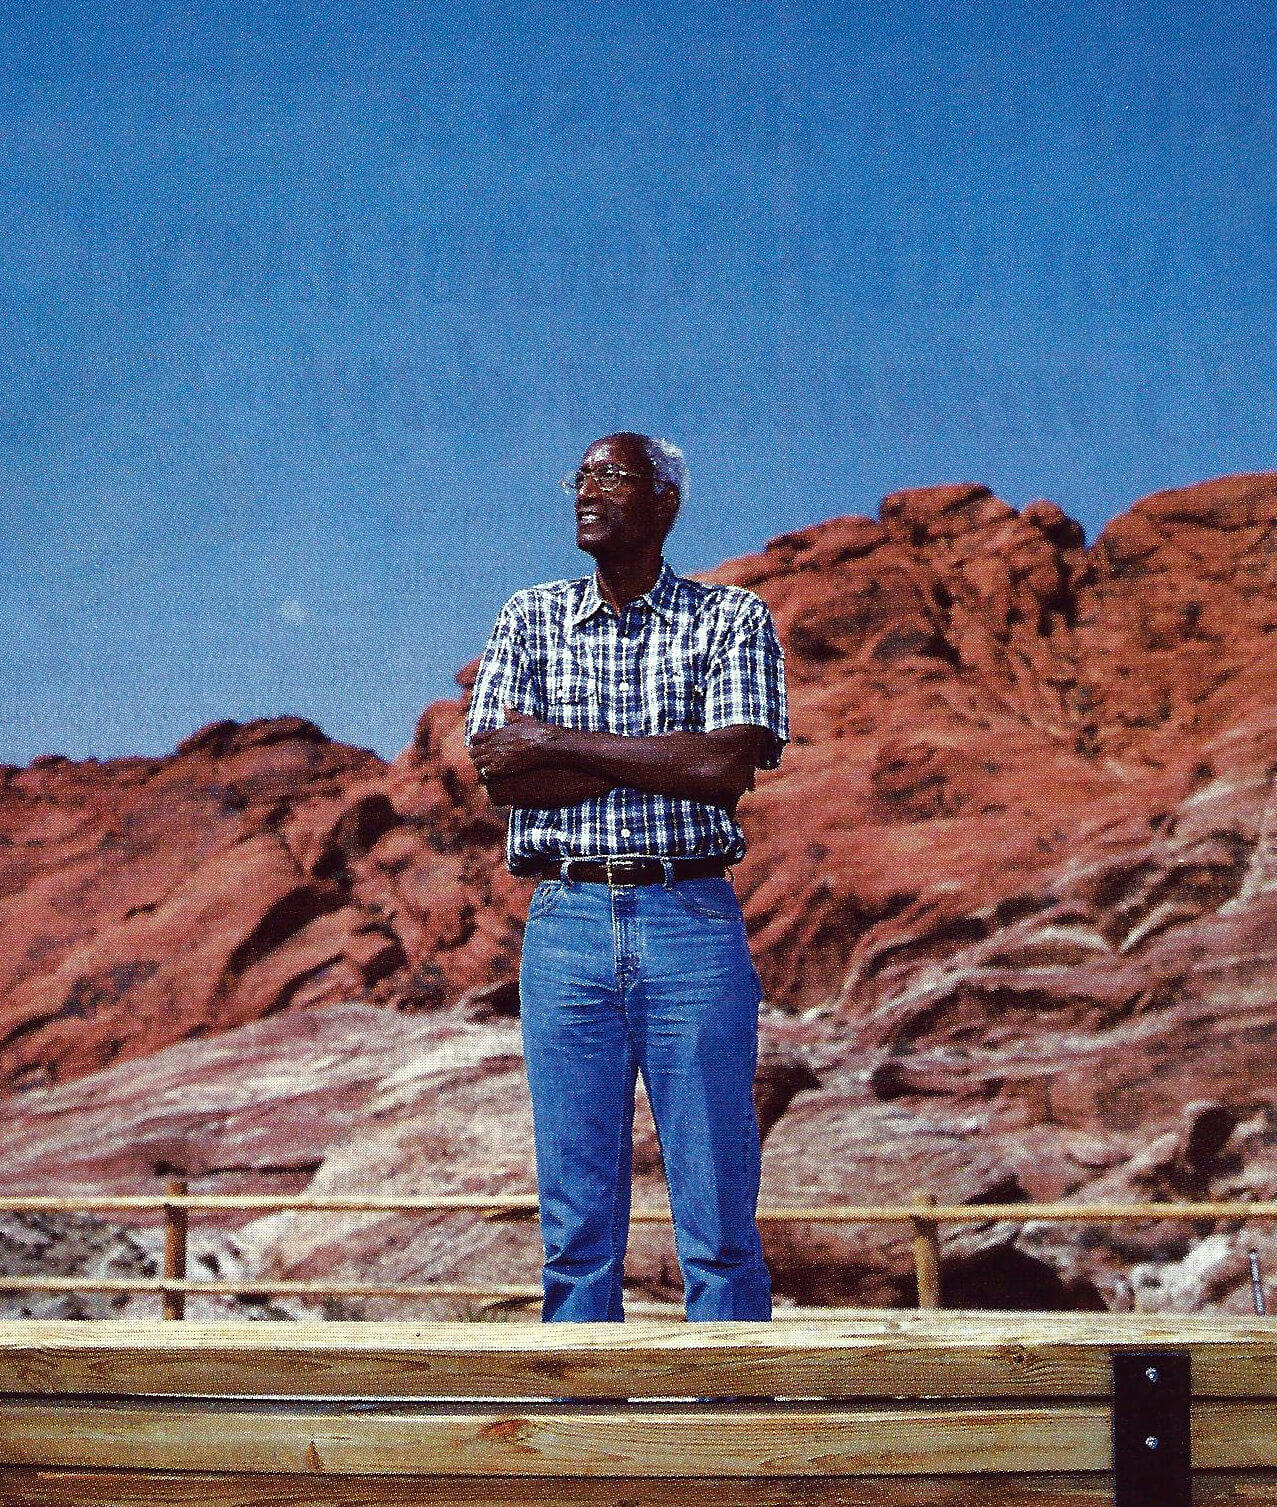 Wiley Brooks, Breatharian With Dessert Rocks In Background